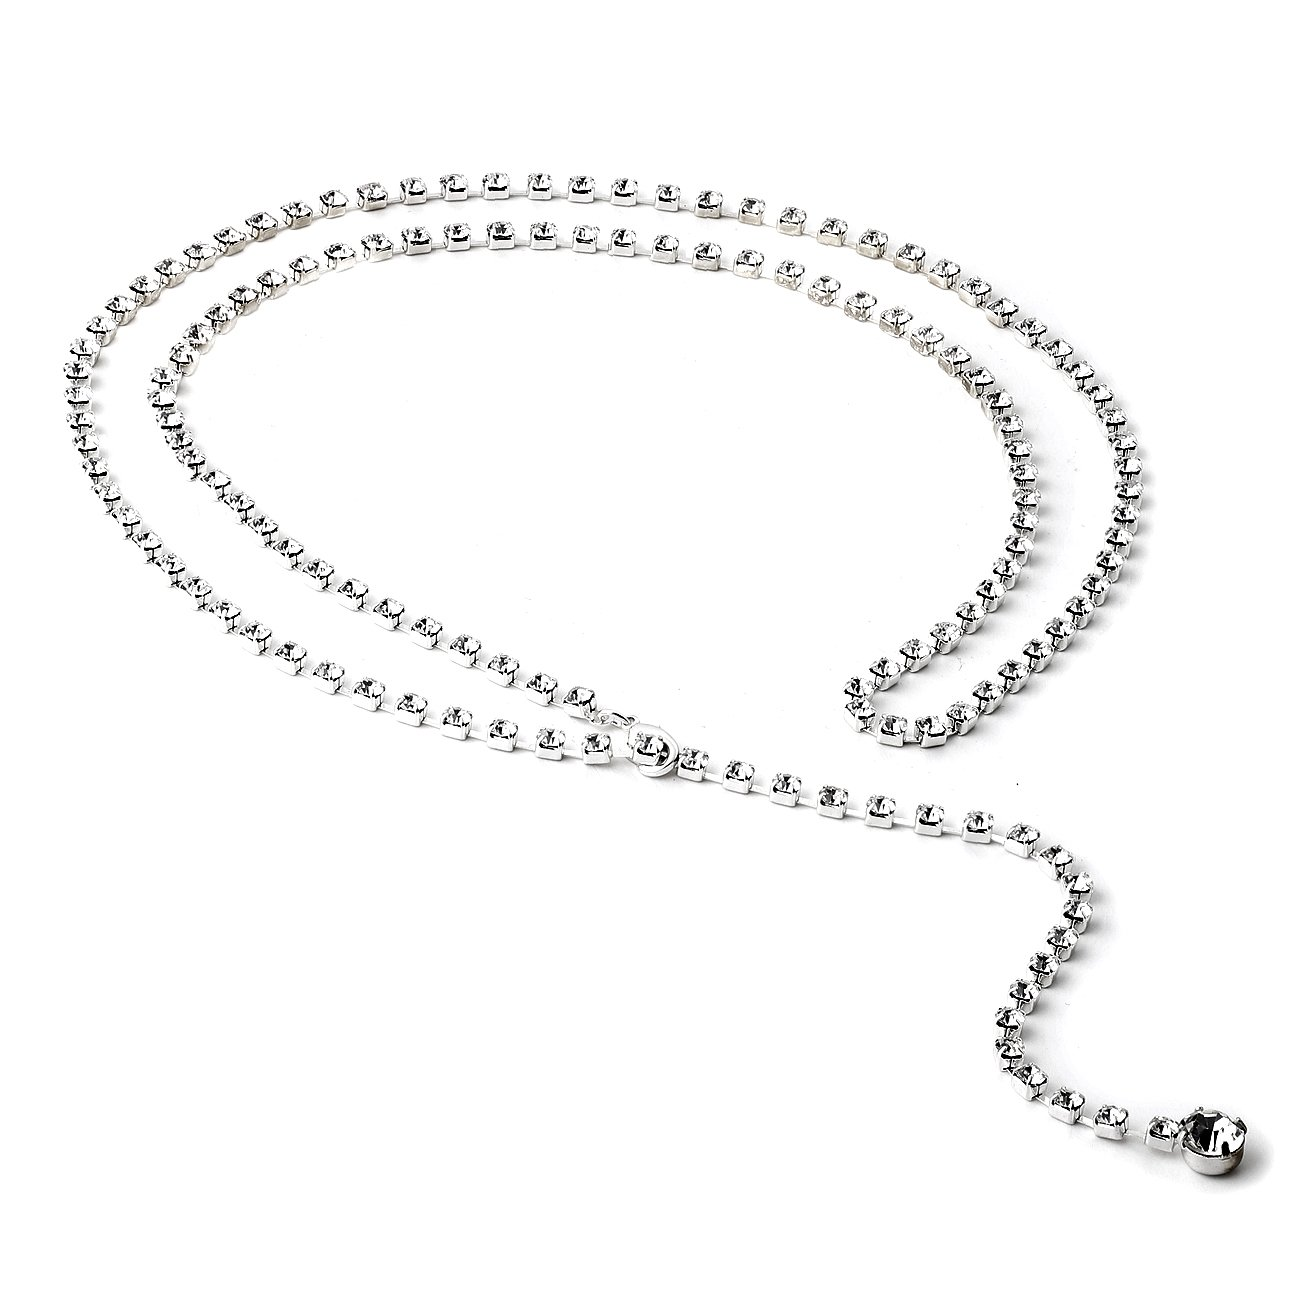 Topwholesalejewel Silver Crystal Rhinestone 39 Inches Single Line Belt with a Single Stone End